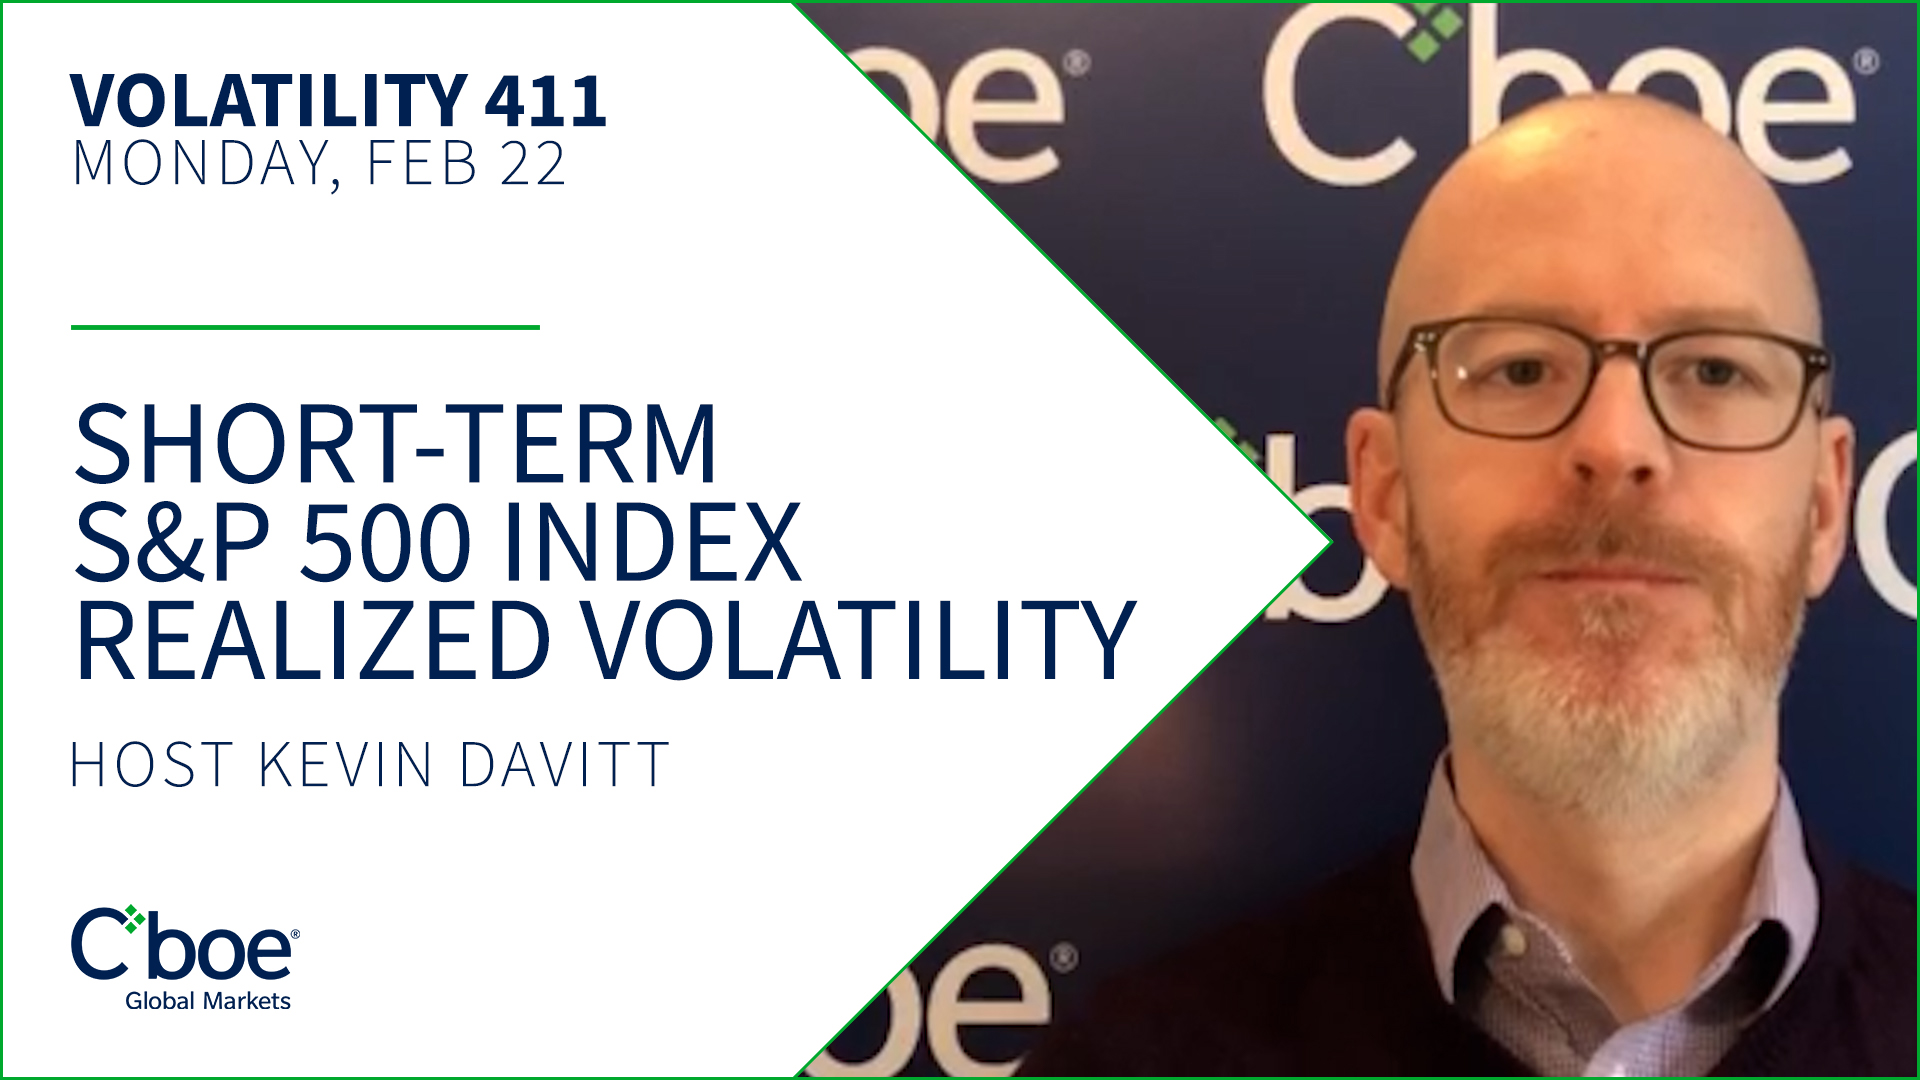 Short-Term S&P 500 Index Realized Volatility at 14-Month Low Thumbnail